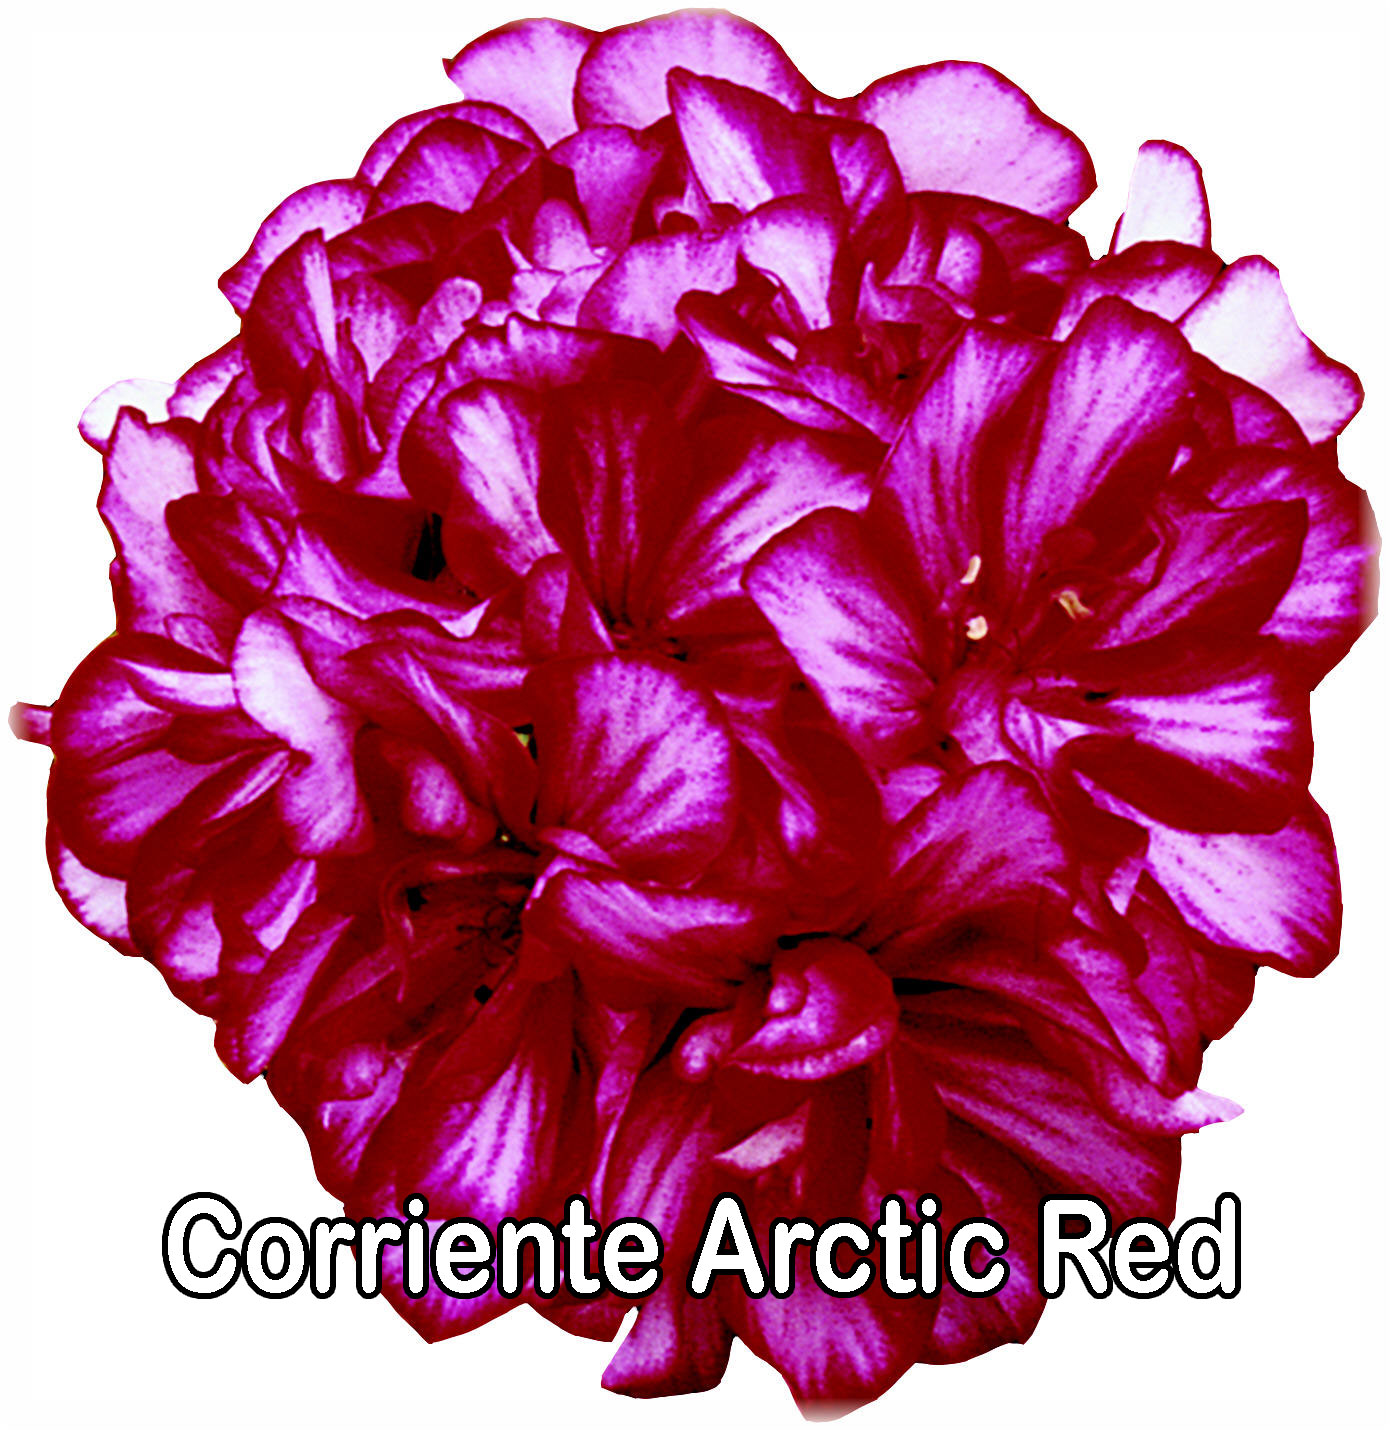 Corriente Arctic Red